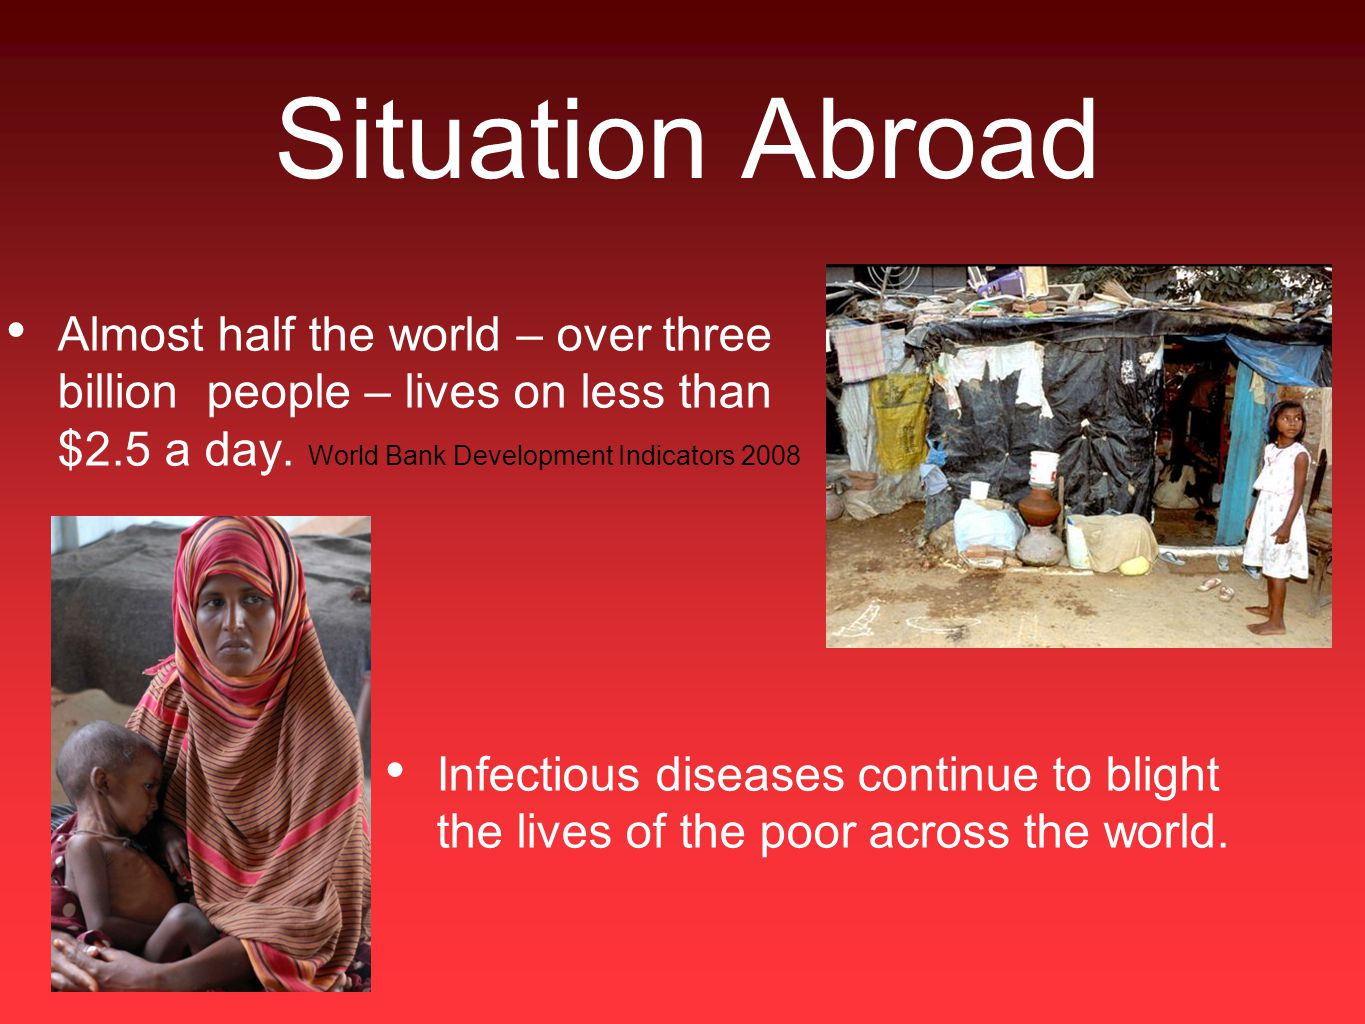 Situation Abroad Every year there are 350–500 million cases of malaria, with 1 million fatalities: Africa accounts for 90 percent of malarial deaths and African children account for over 80 percent of malaria victims worldwide.